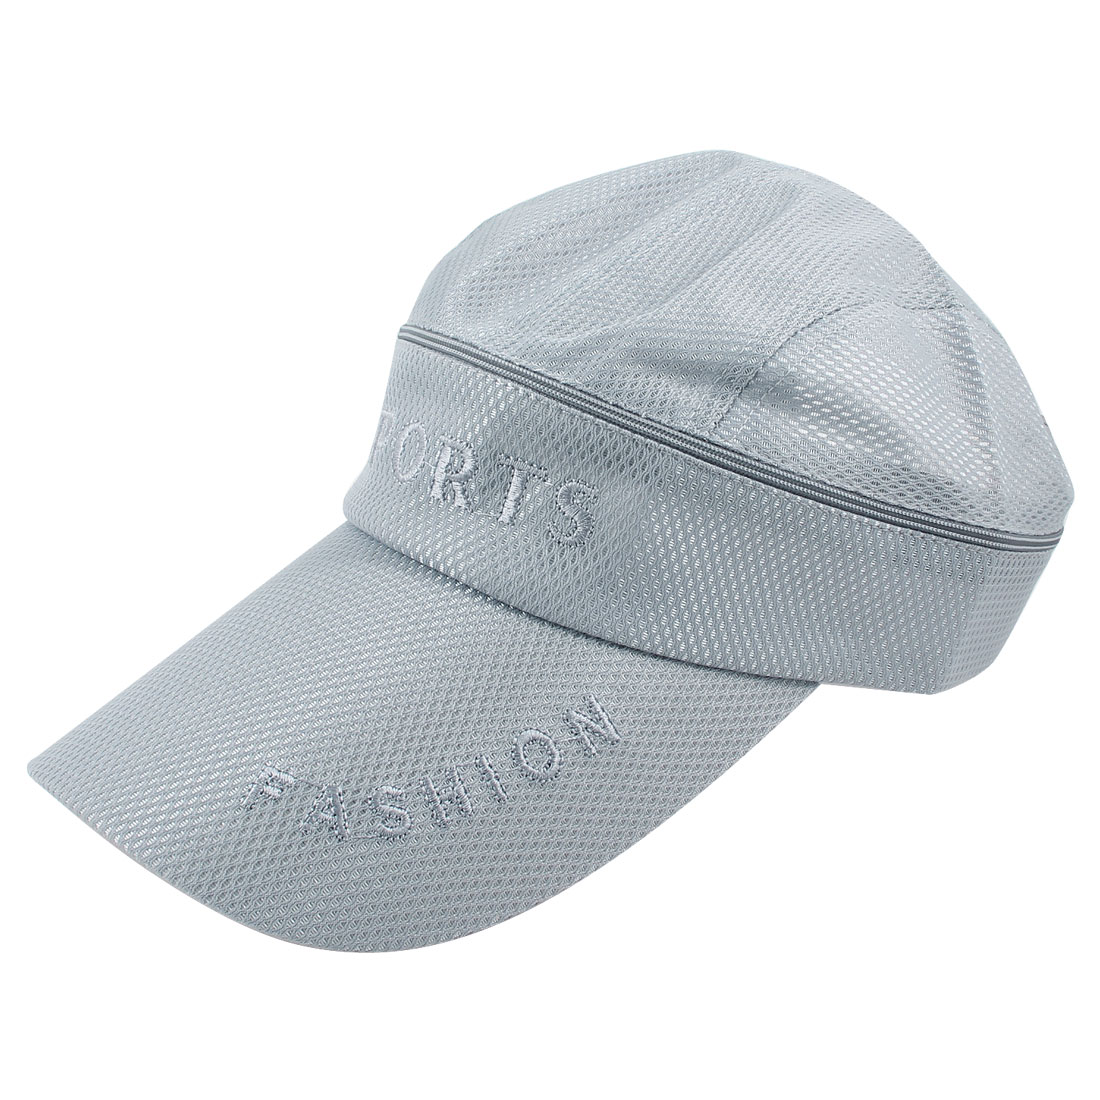 Gray Top Detachable Design Letter Printed Outdoor Sun Visor Cap Hat for Man